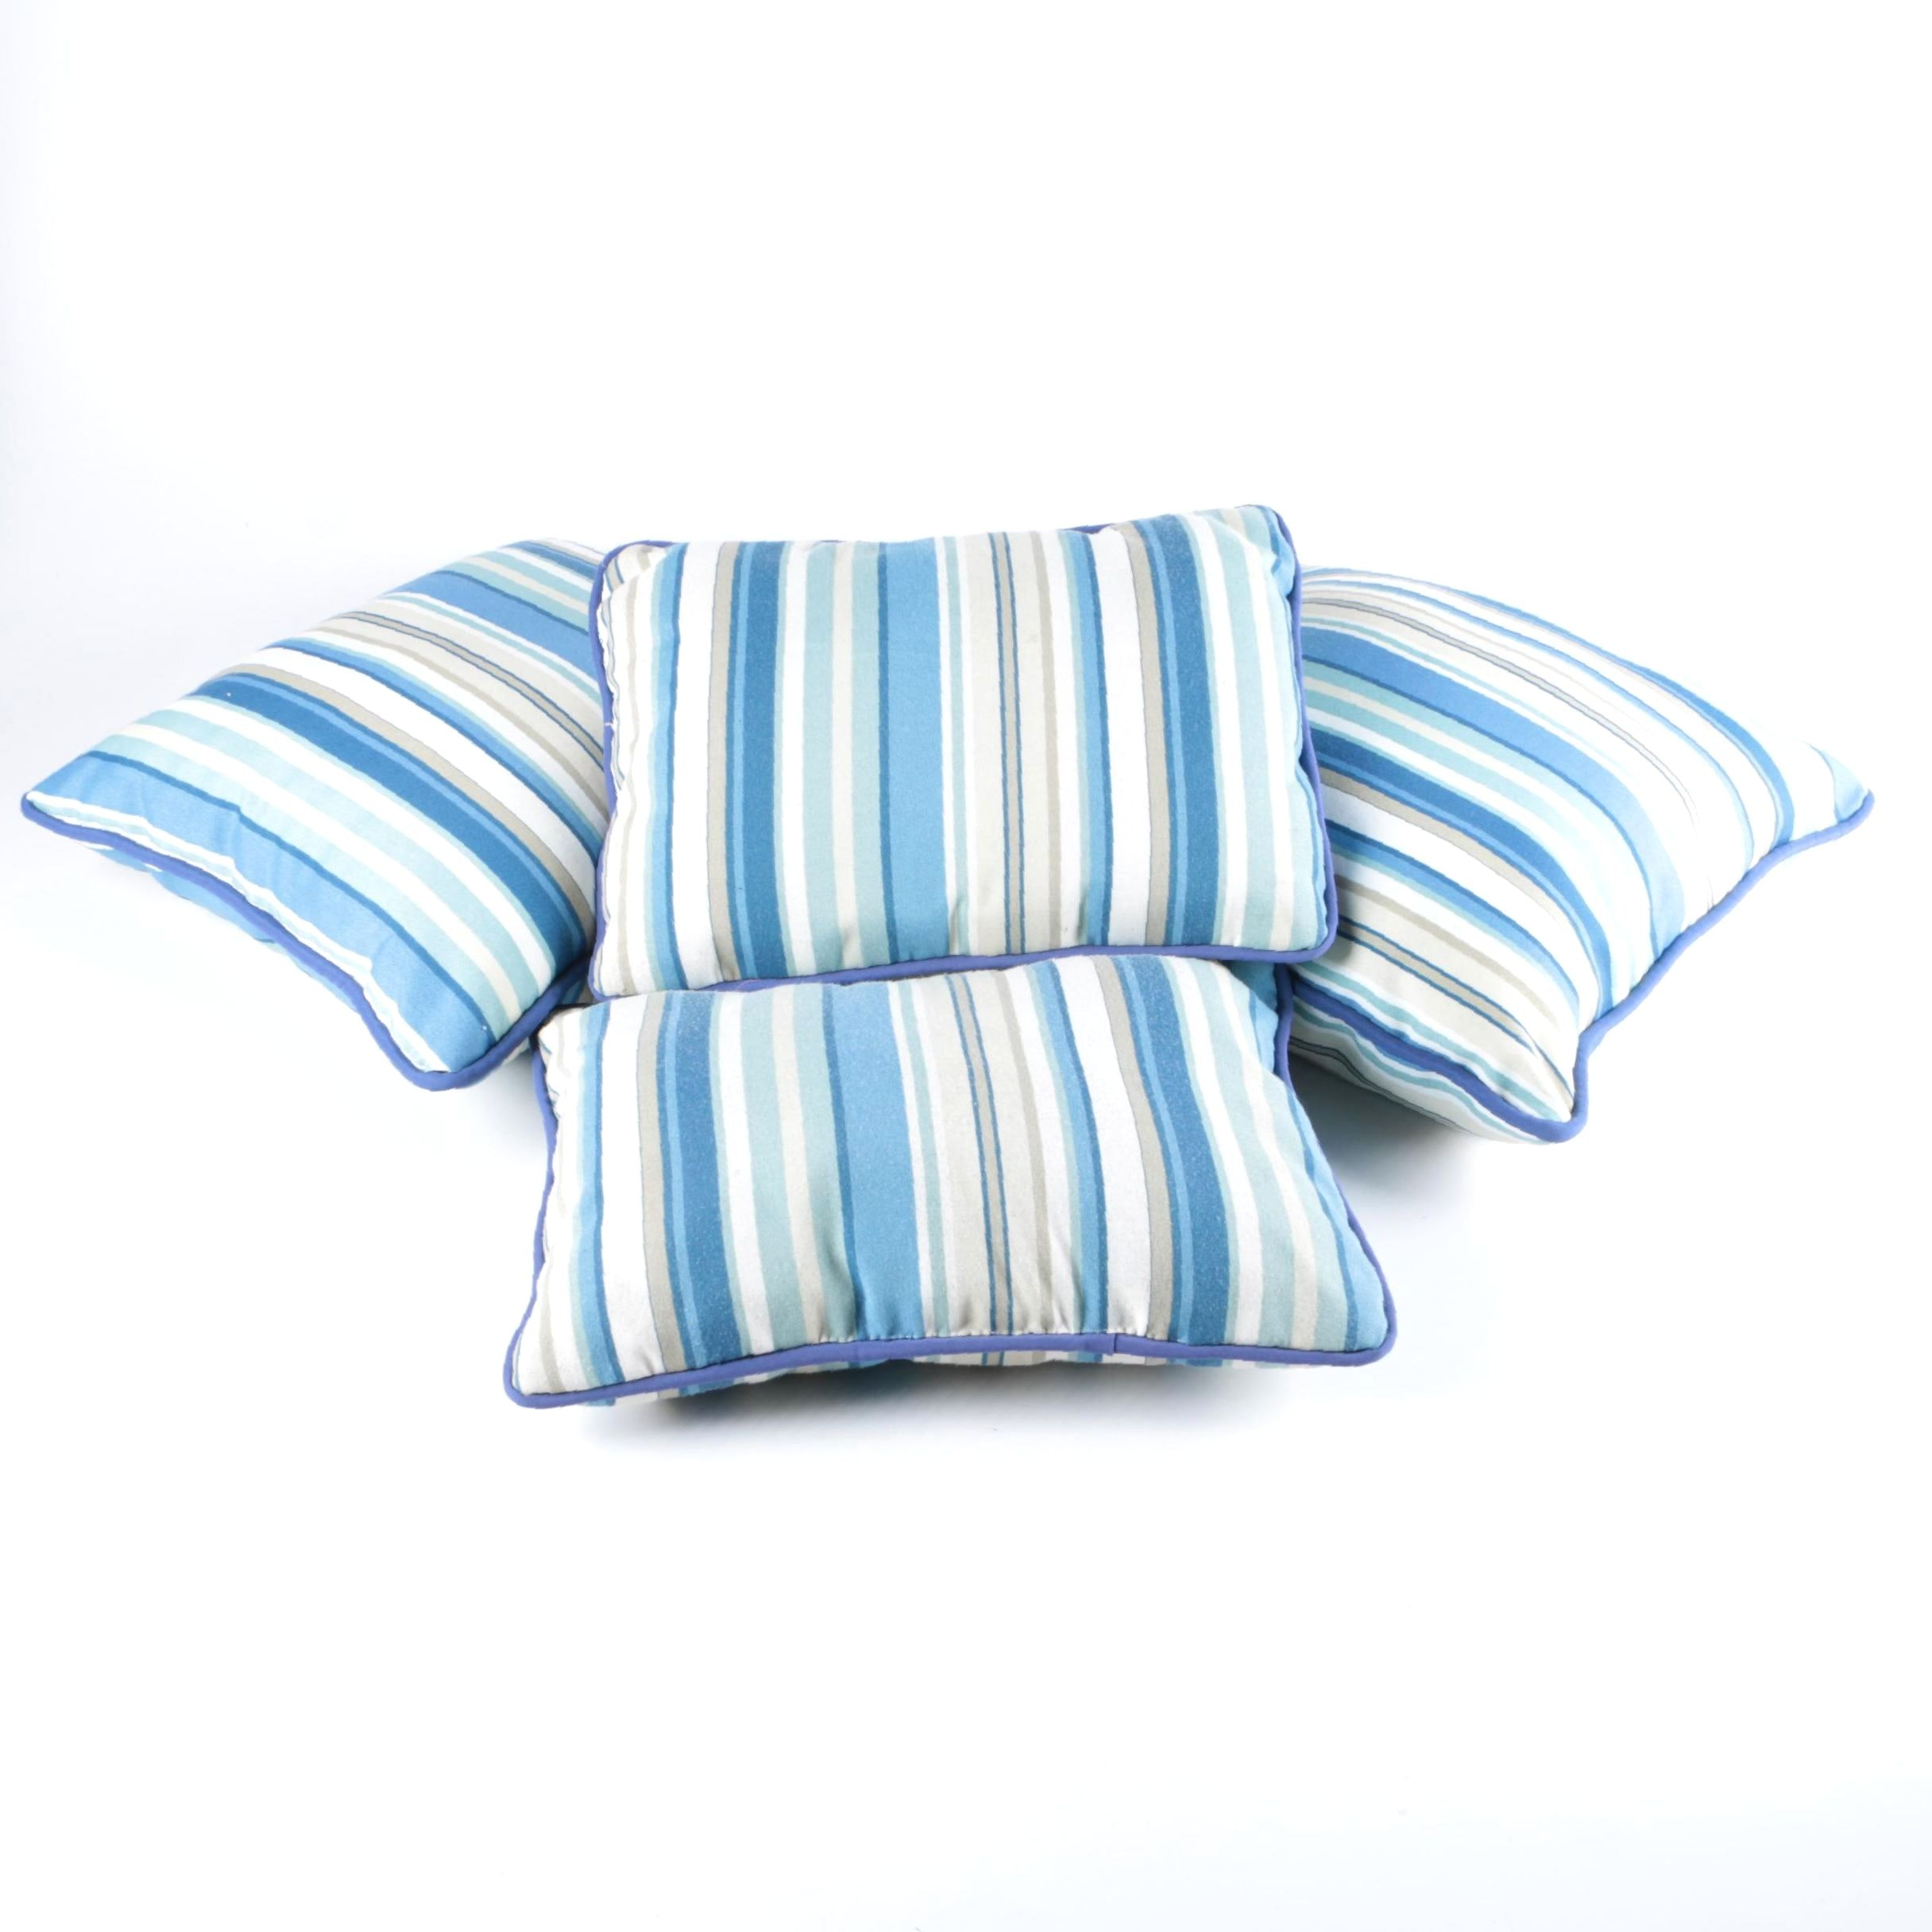 Four Blue and White Striped Accent Pillows